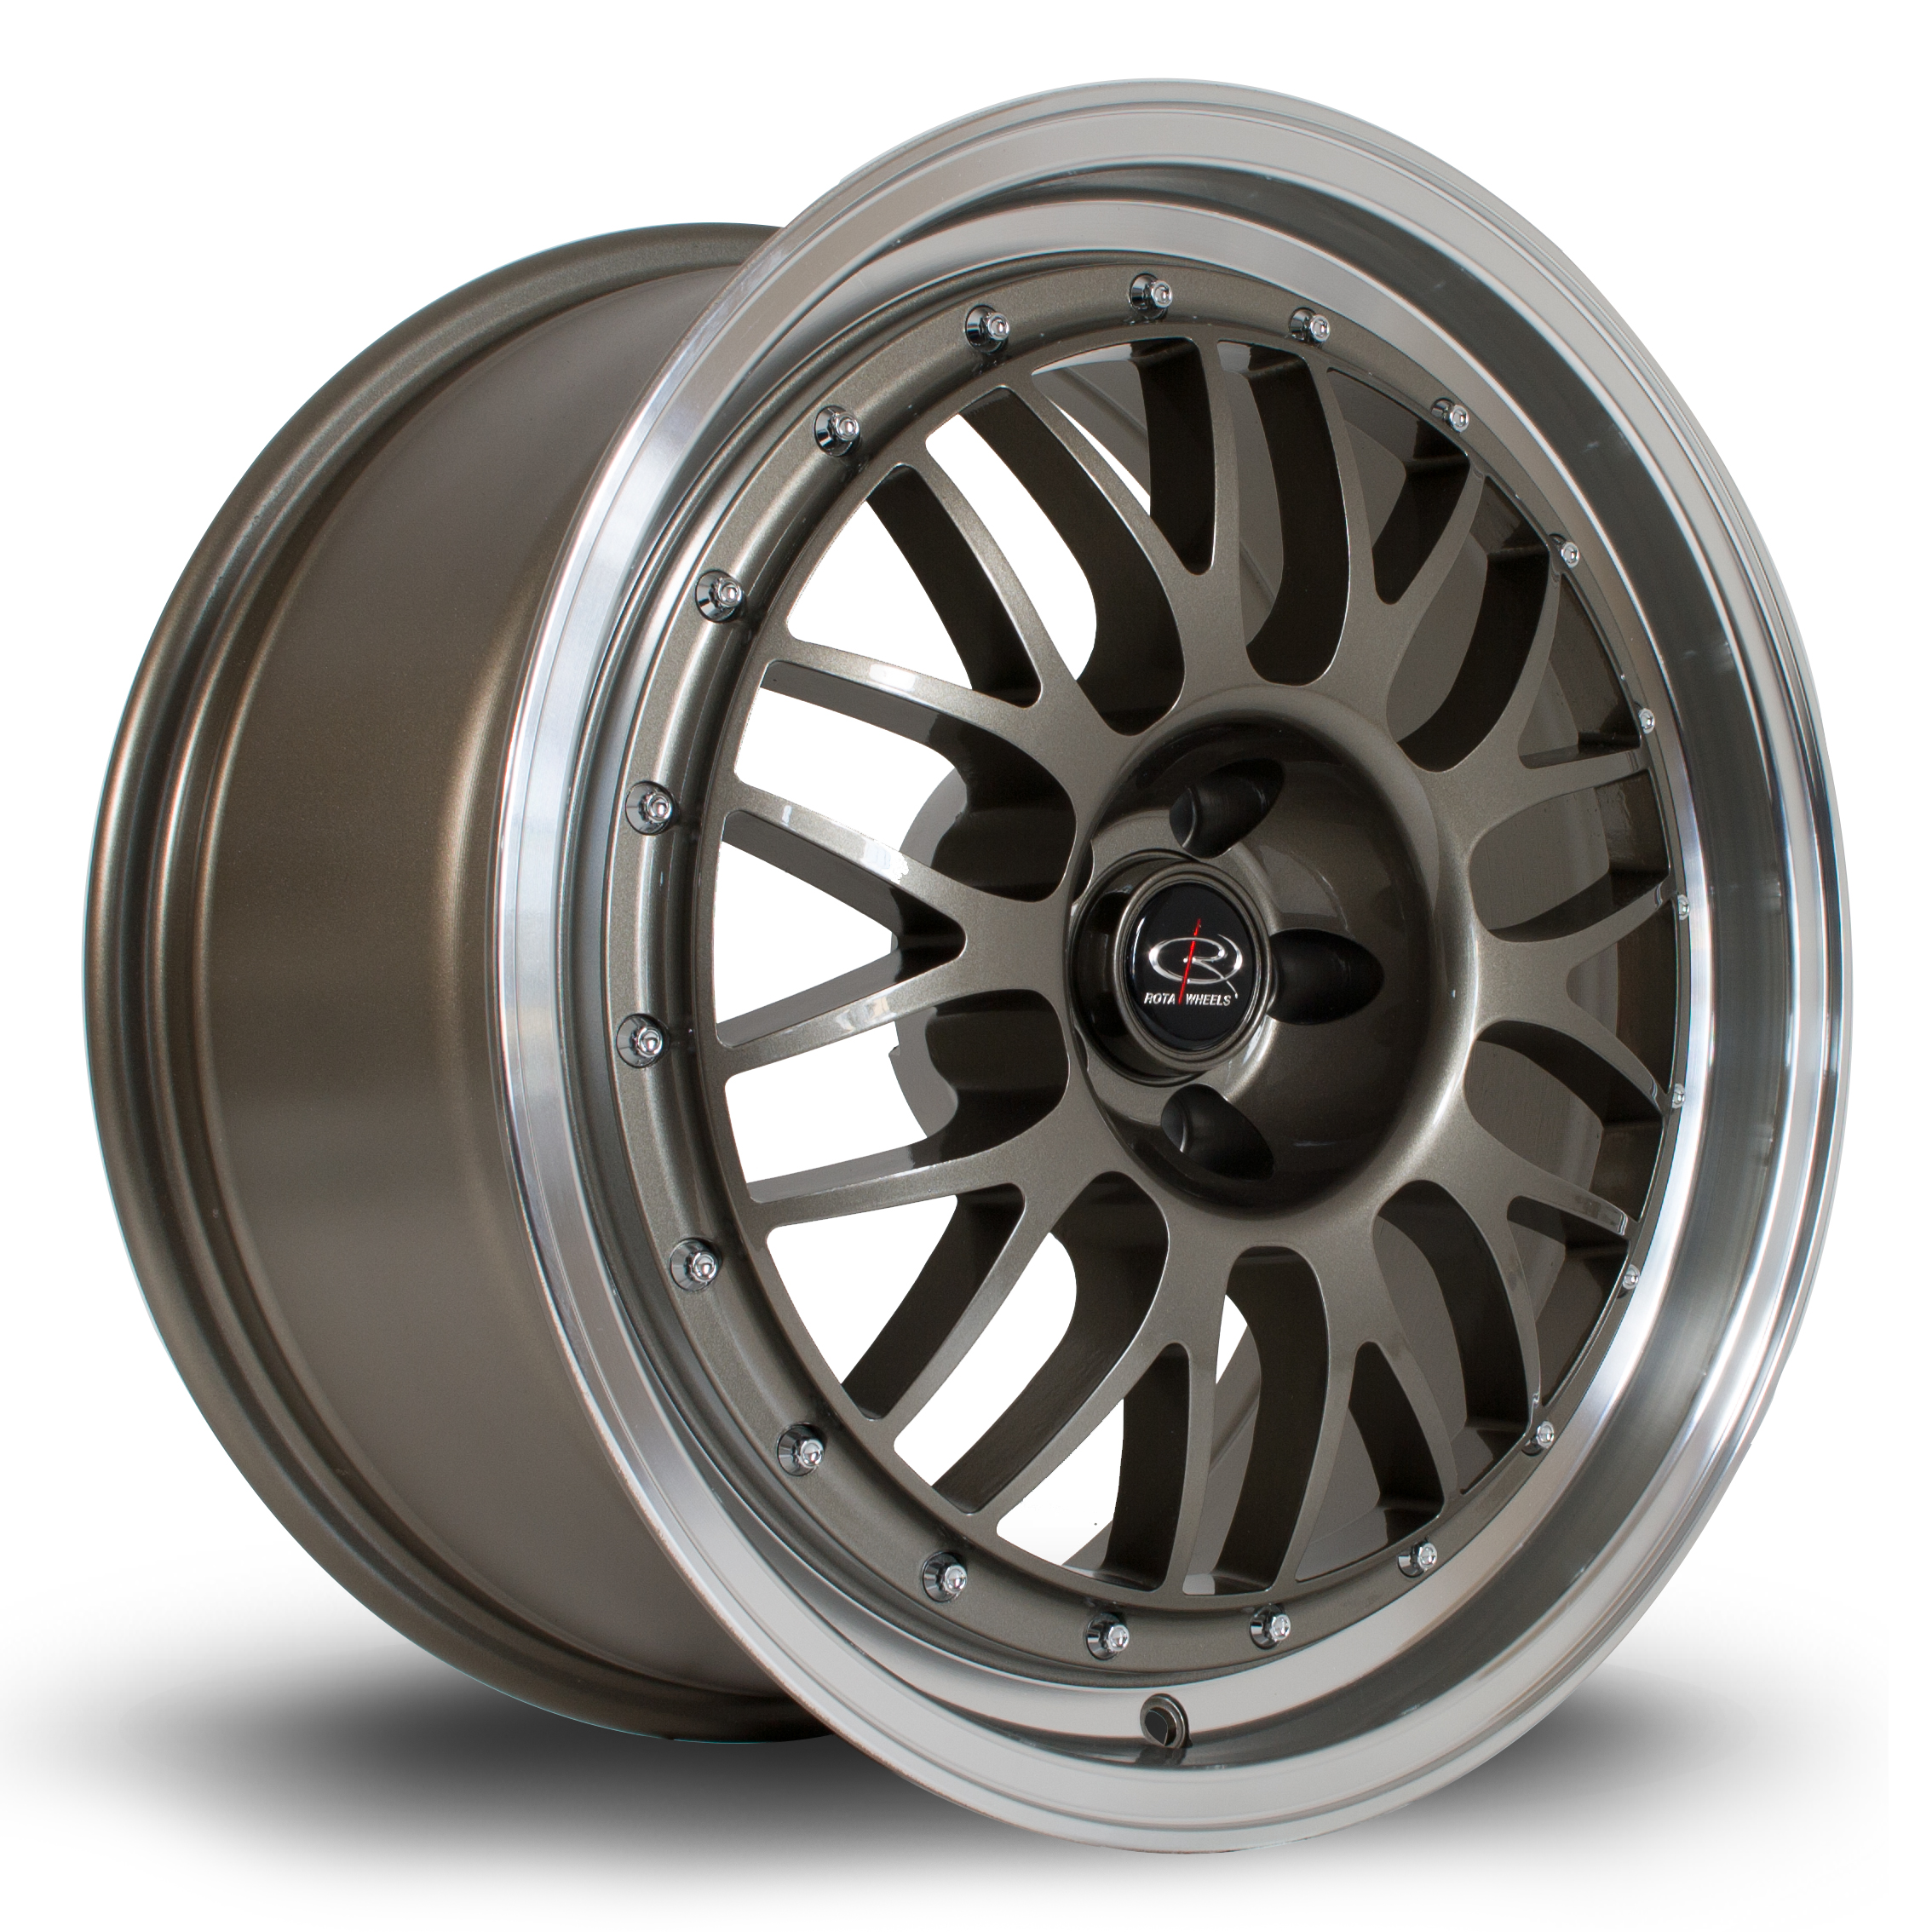 Rota MC3 wheels